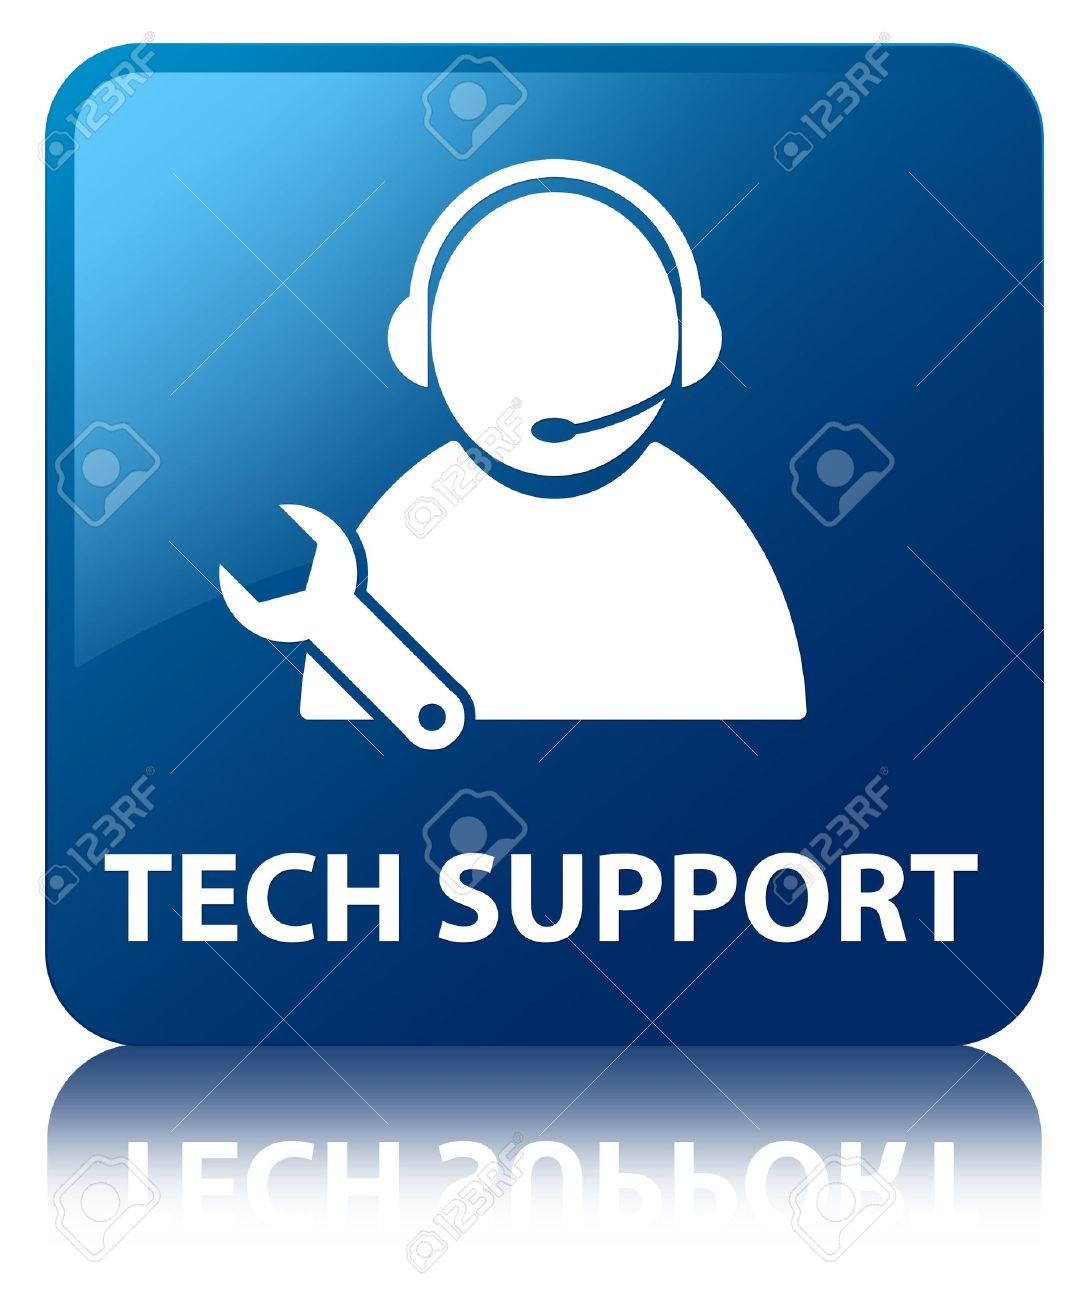 Image result for tech support